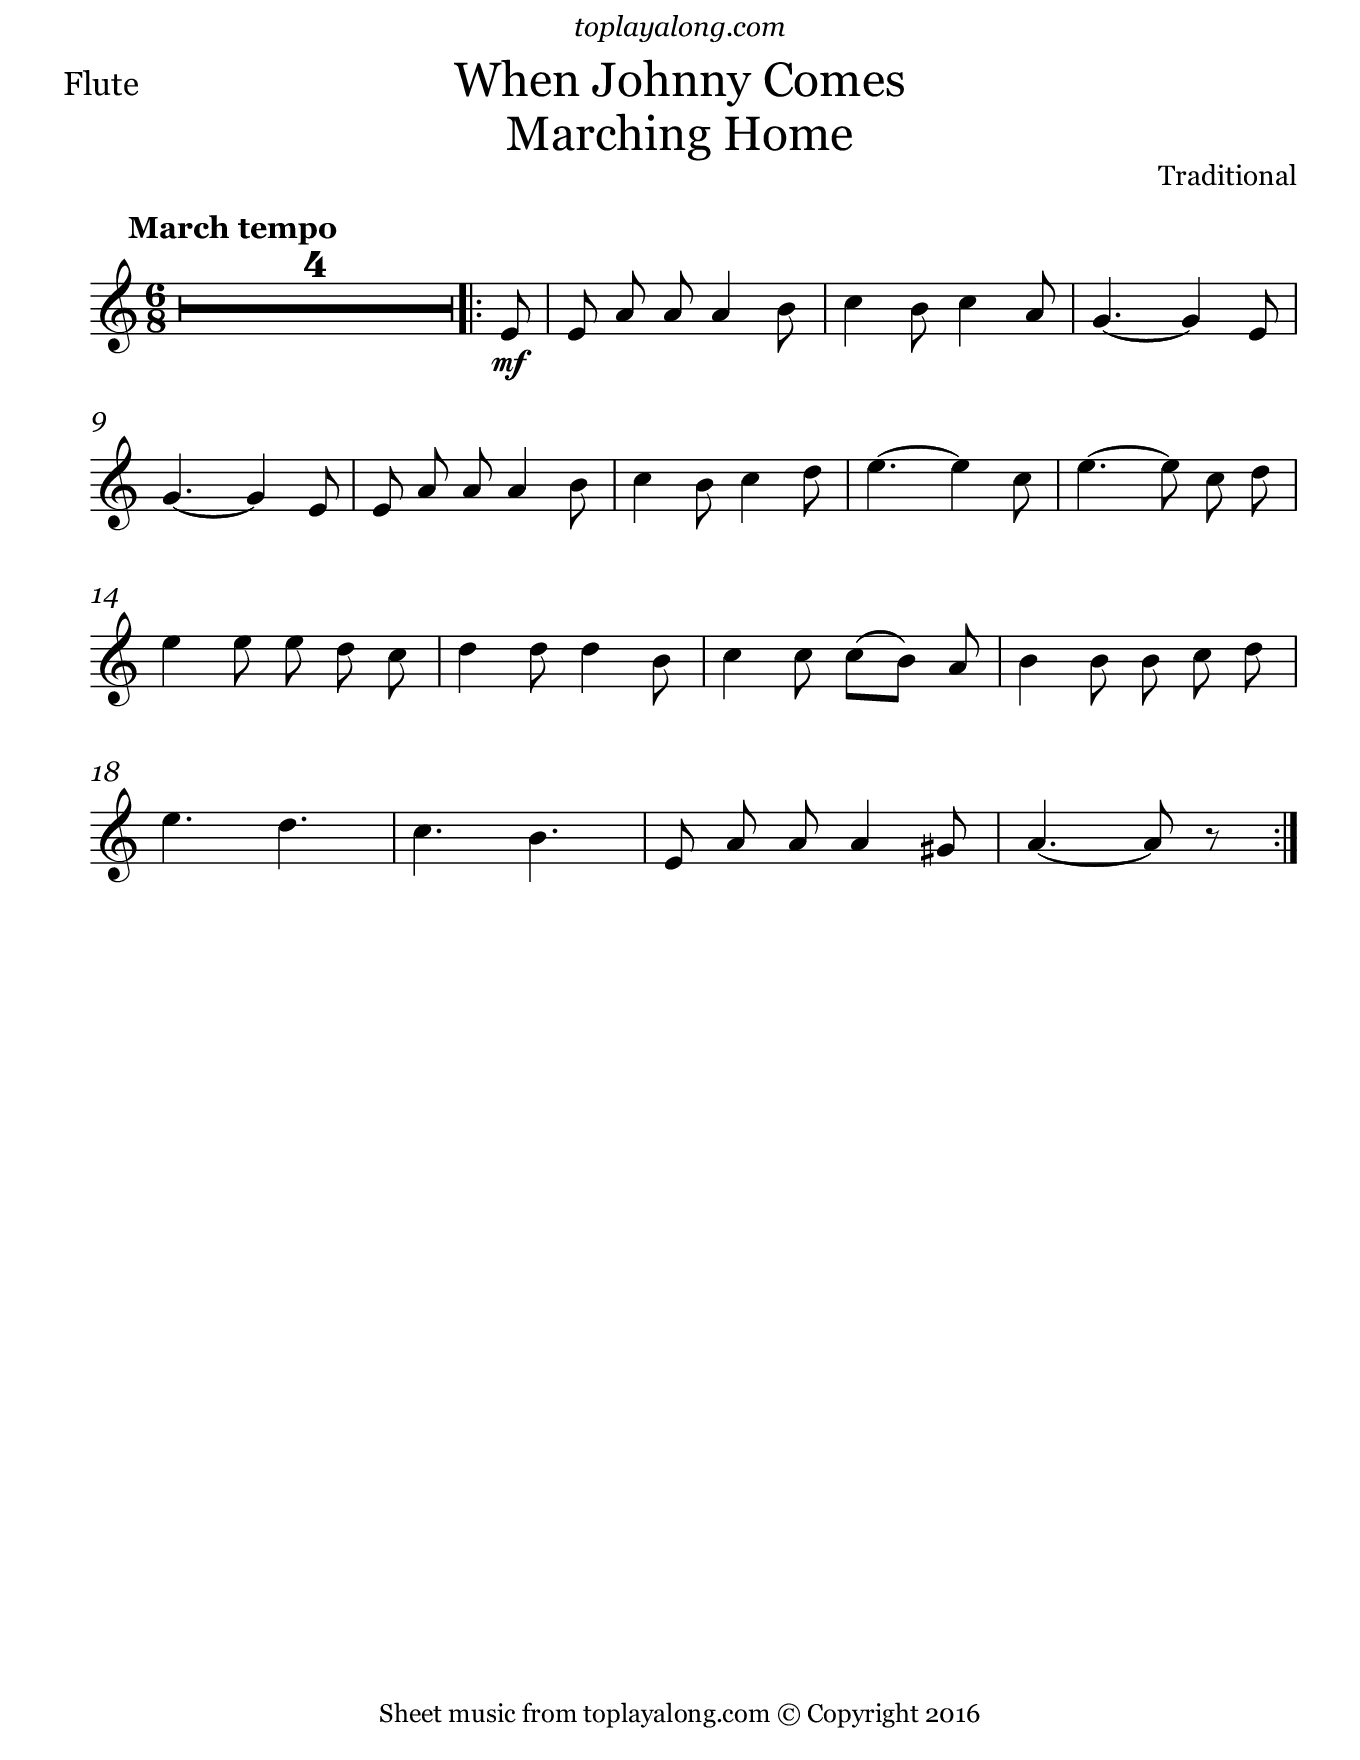 When Johnny Comes Marching Home. Sheet music for Flute, page 1.